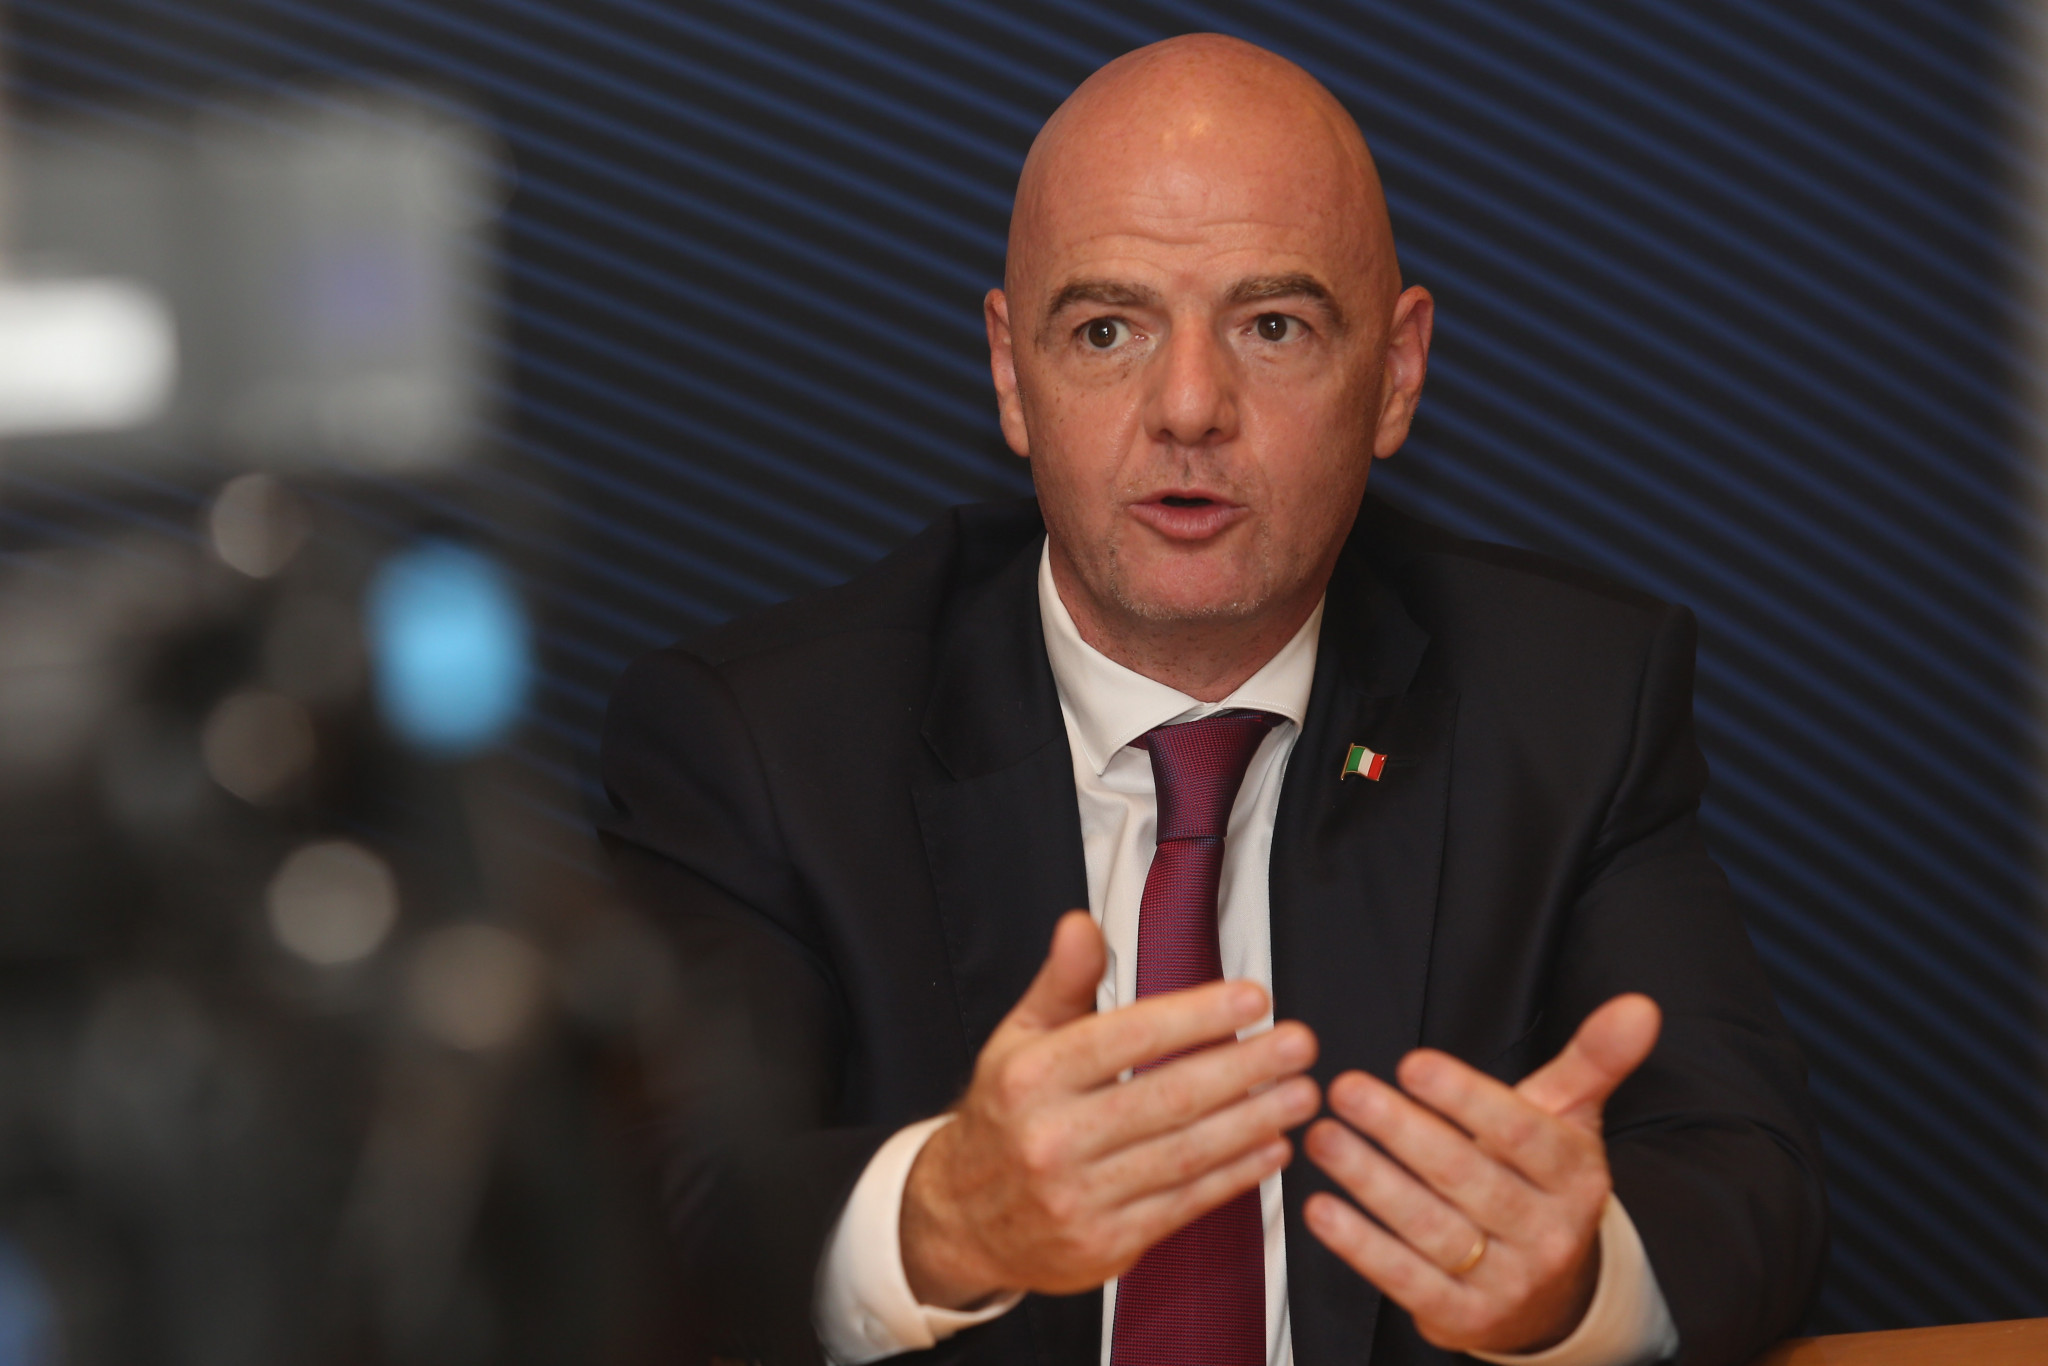 Keller removed from position of extraordinary federal prosecutor in Infantino investigation